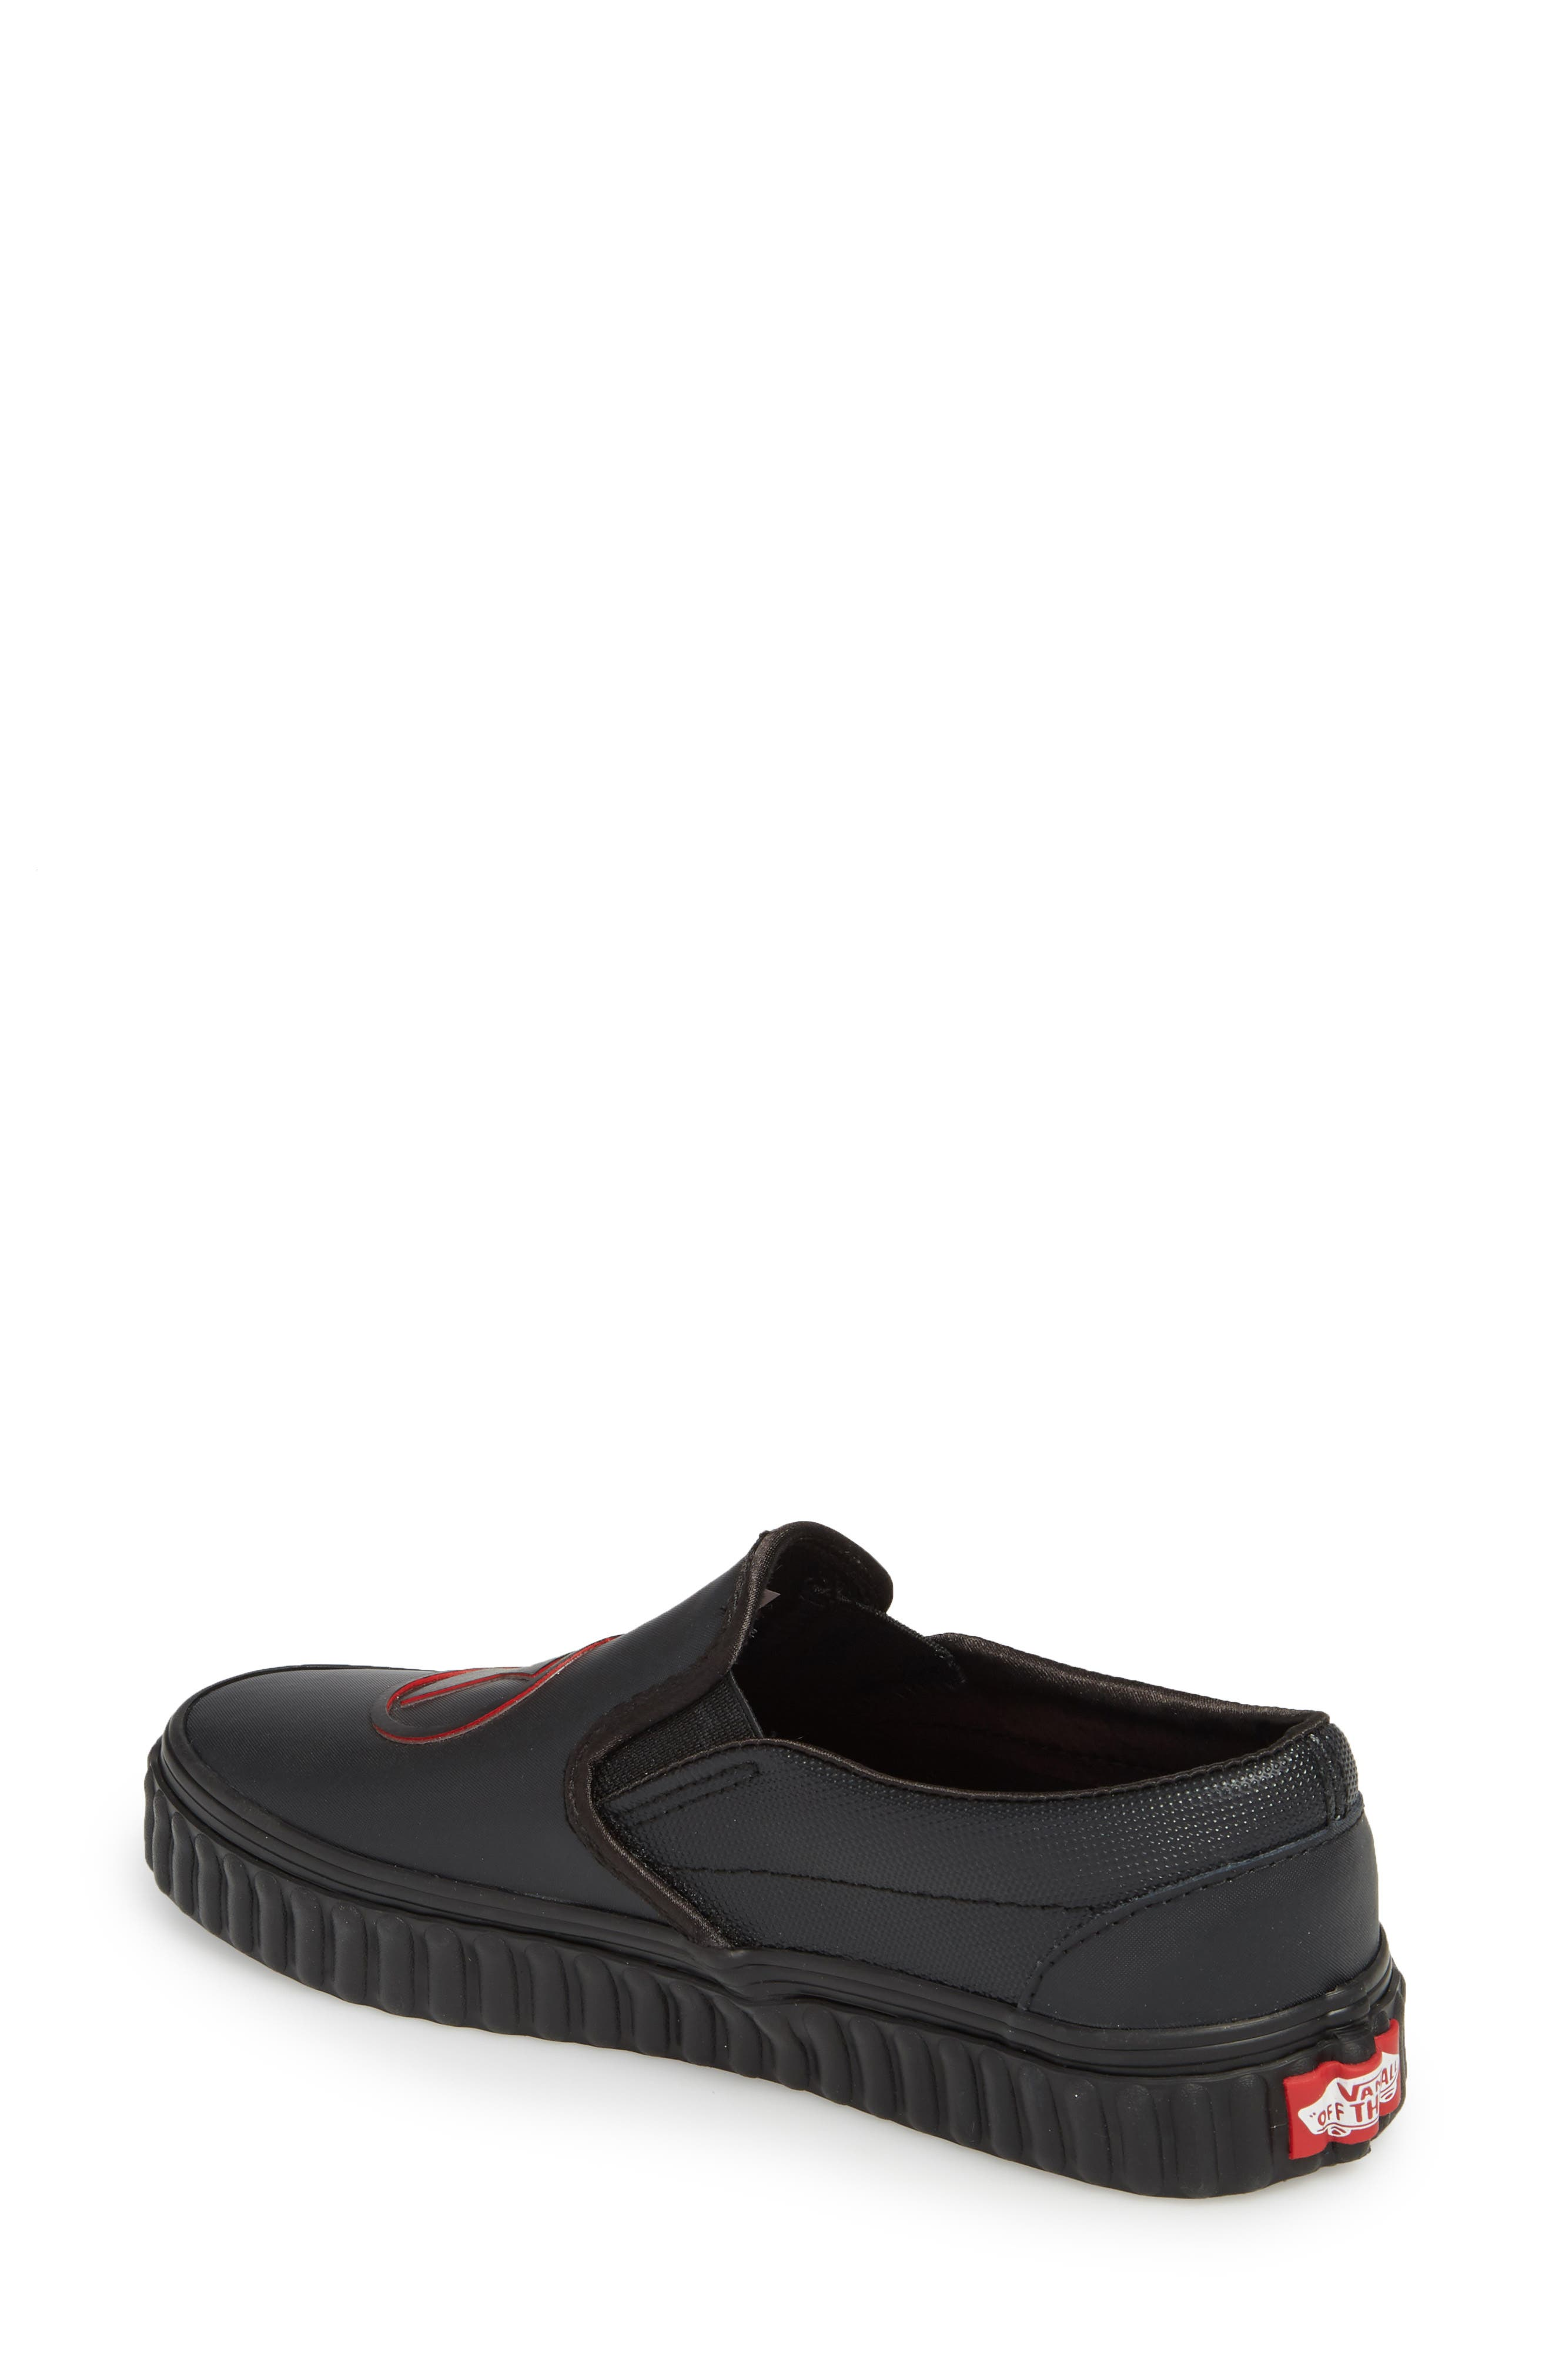 Marvel<sup>®</sup> Black Widow Classic Slip-On,                             Alternate thumbnail 2, color,                             MARVEL BLACK WIDOW/ BLACK